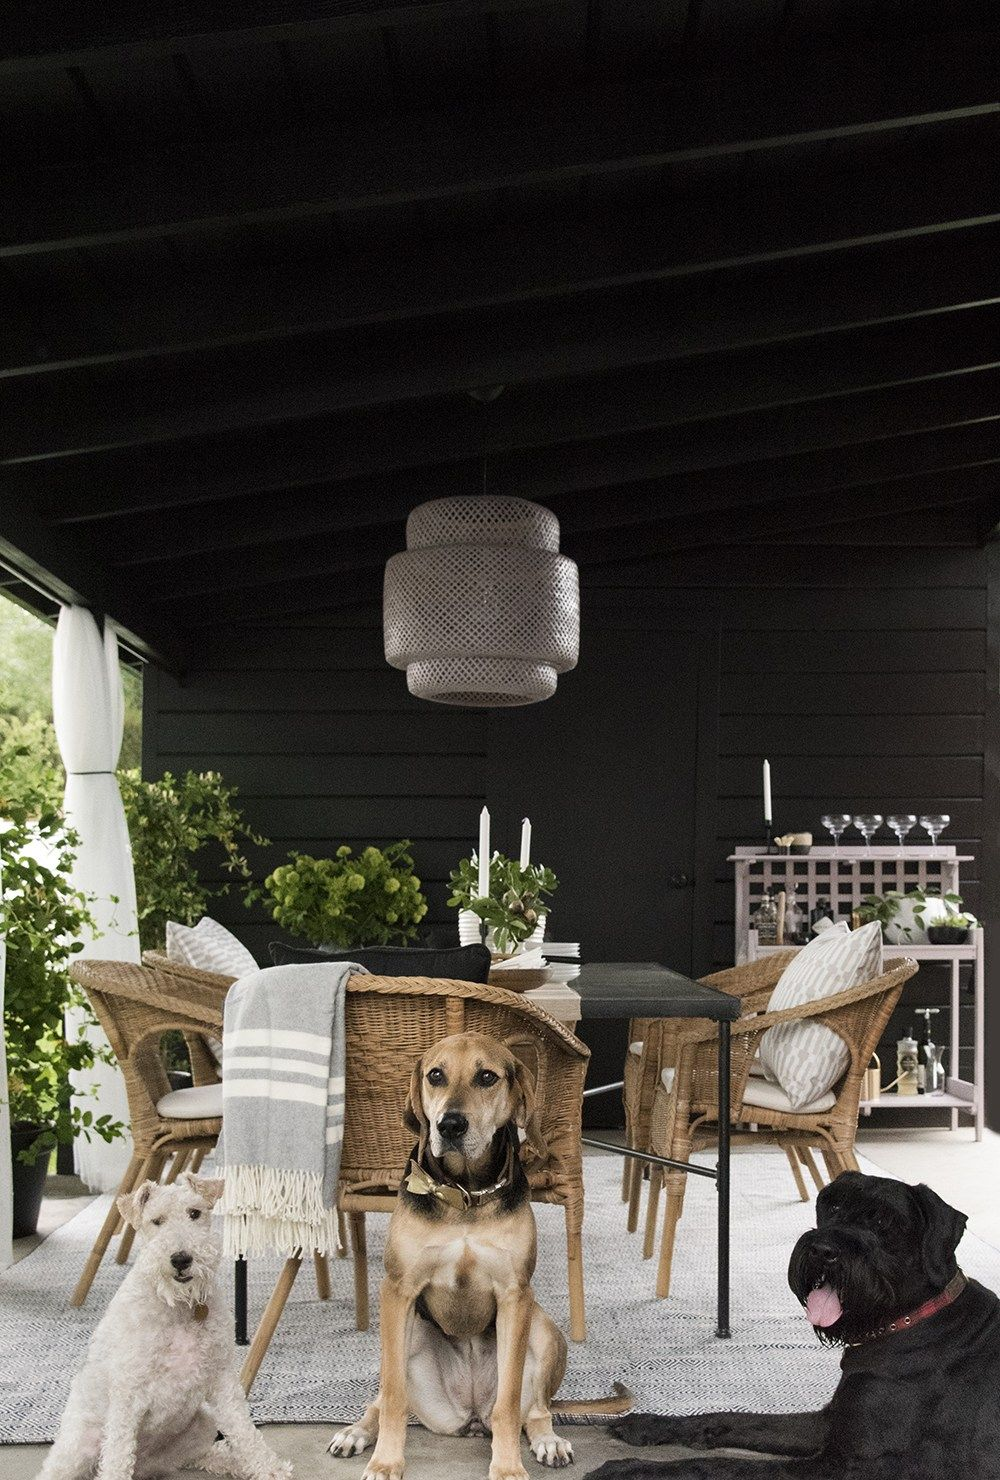 Outdoor Patio Dog Beds: Painted Carport Makeover - Room For Tuesday Blog